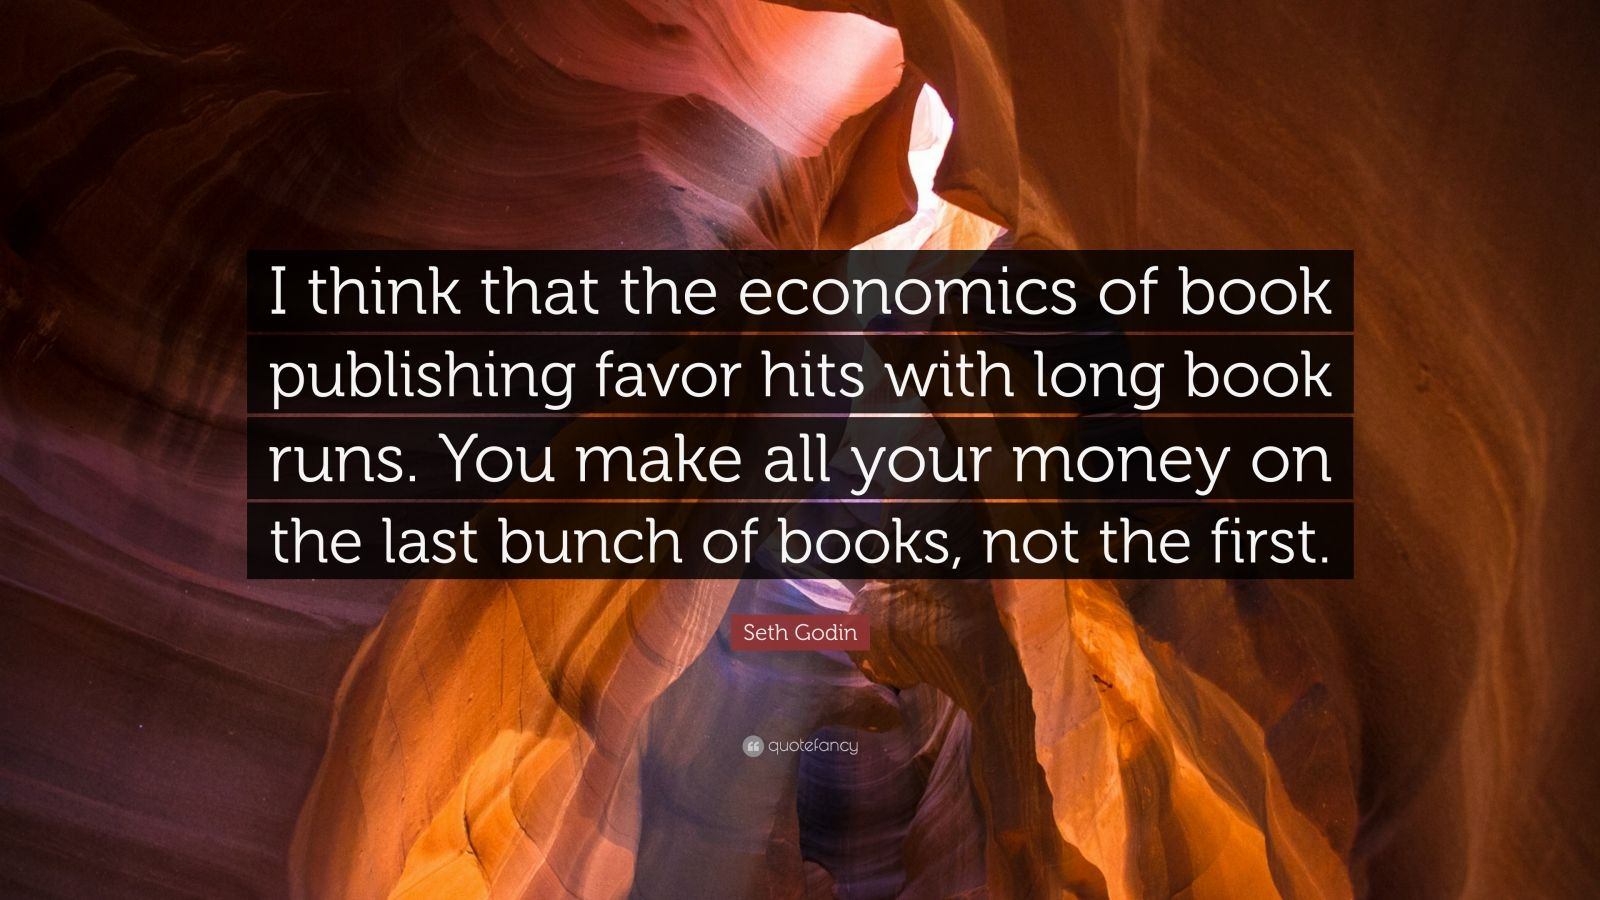 """Seth Godin Quote: """"I think that the economics of book publishing favor hits with long book runs. You make all your money on the last bunch of books, not the first."""""""